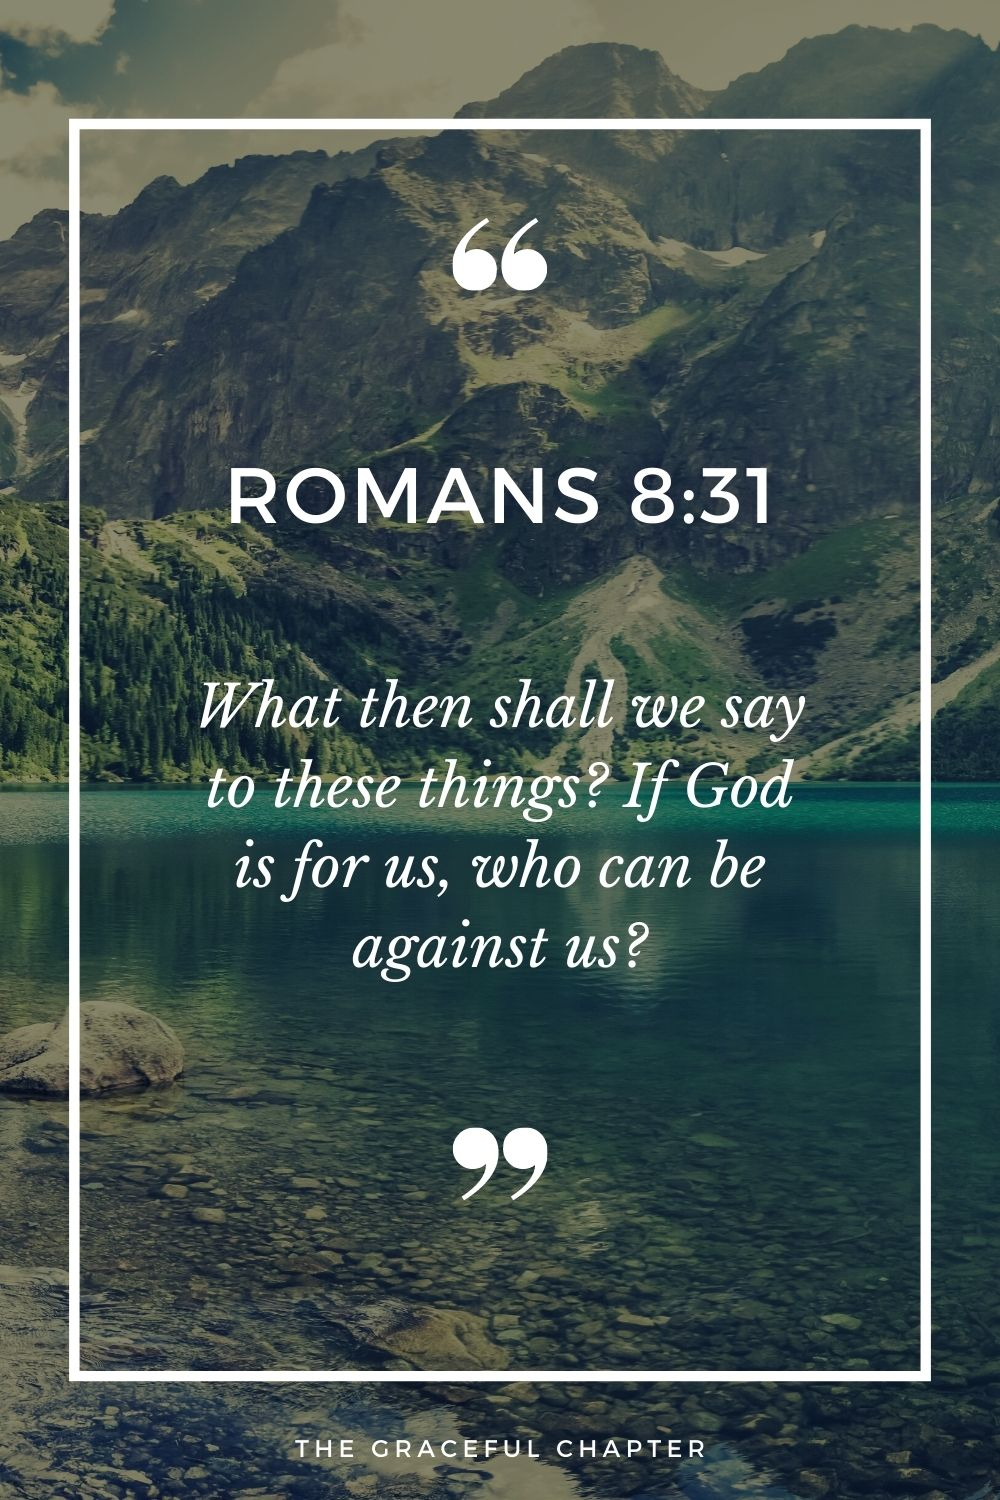 What then shall we say to these things? If God is for us, who can be against us? What then shall we say to these things? If God is for us, who can be against us? Romans 8:31